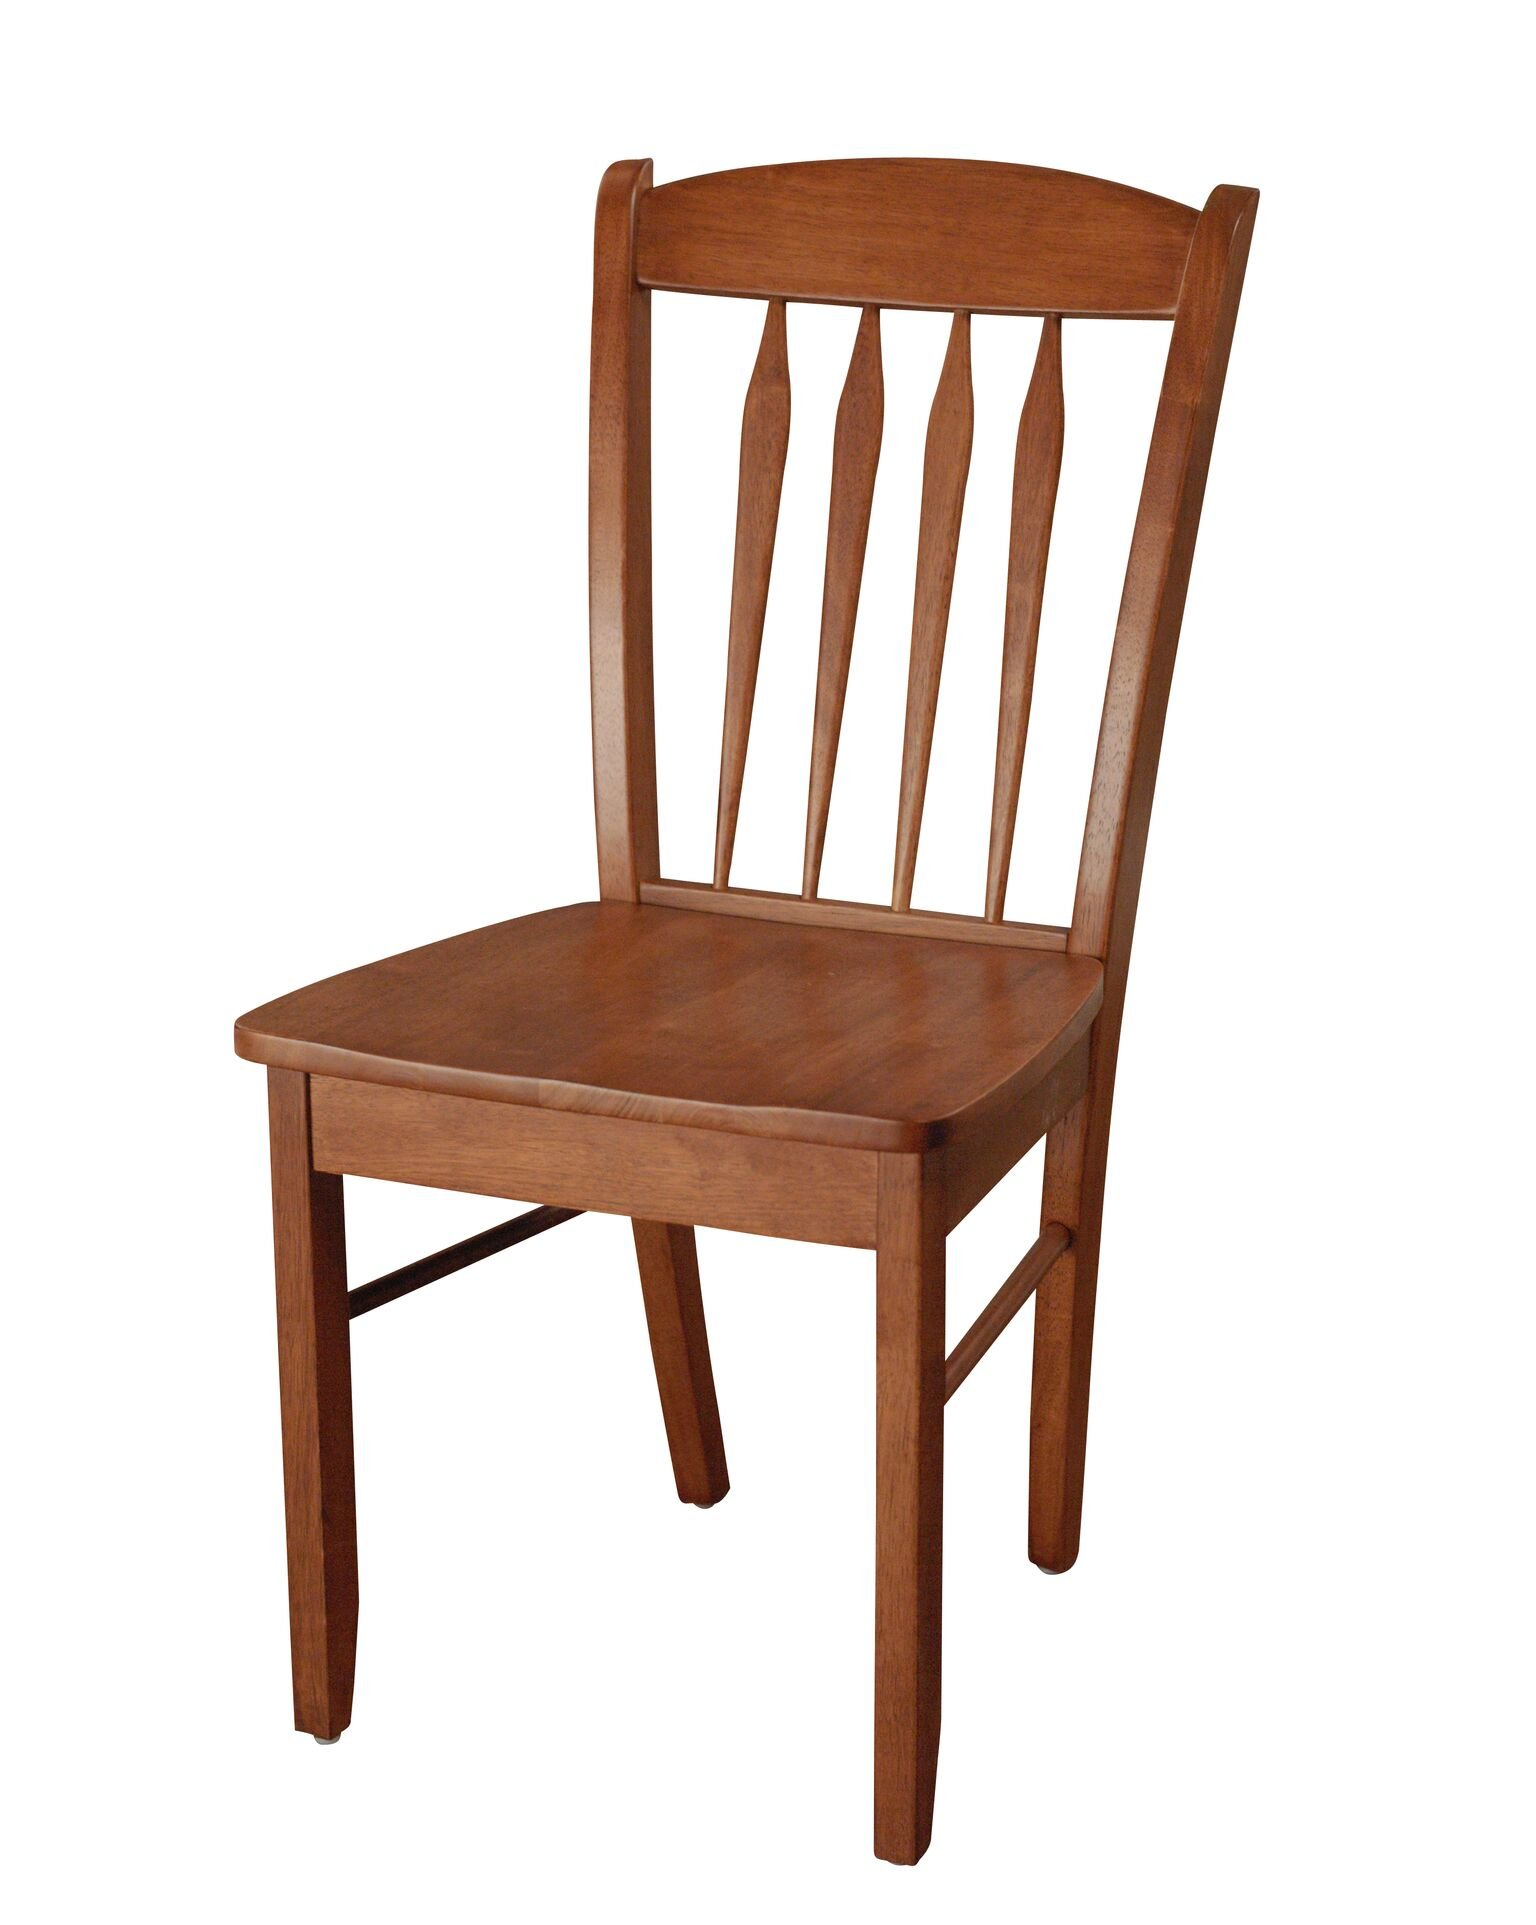 TMS Savannah Chair - Handsome desk or office chair Finished in cherry Constructed of sturdy rubberwood - kitchen-dining-room-furniture, kitchen-dining-room, kitchen-dining-room-chairs - 71F6mJJQ4BL -